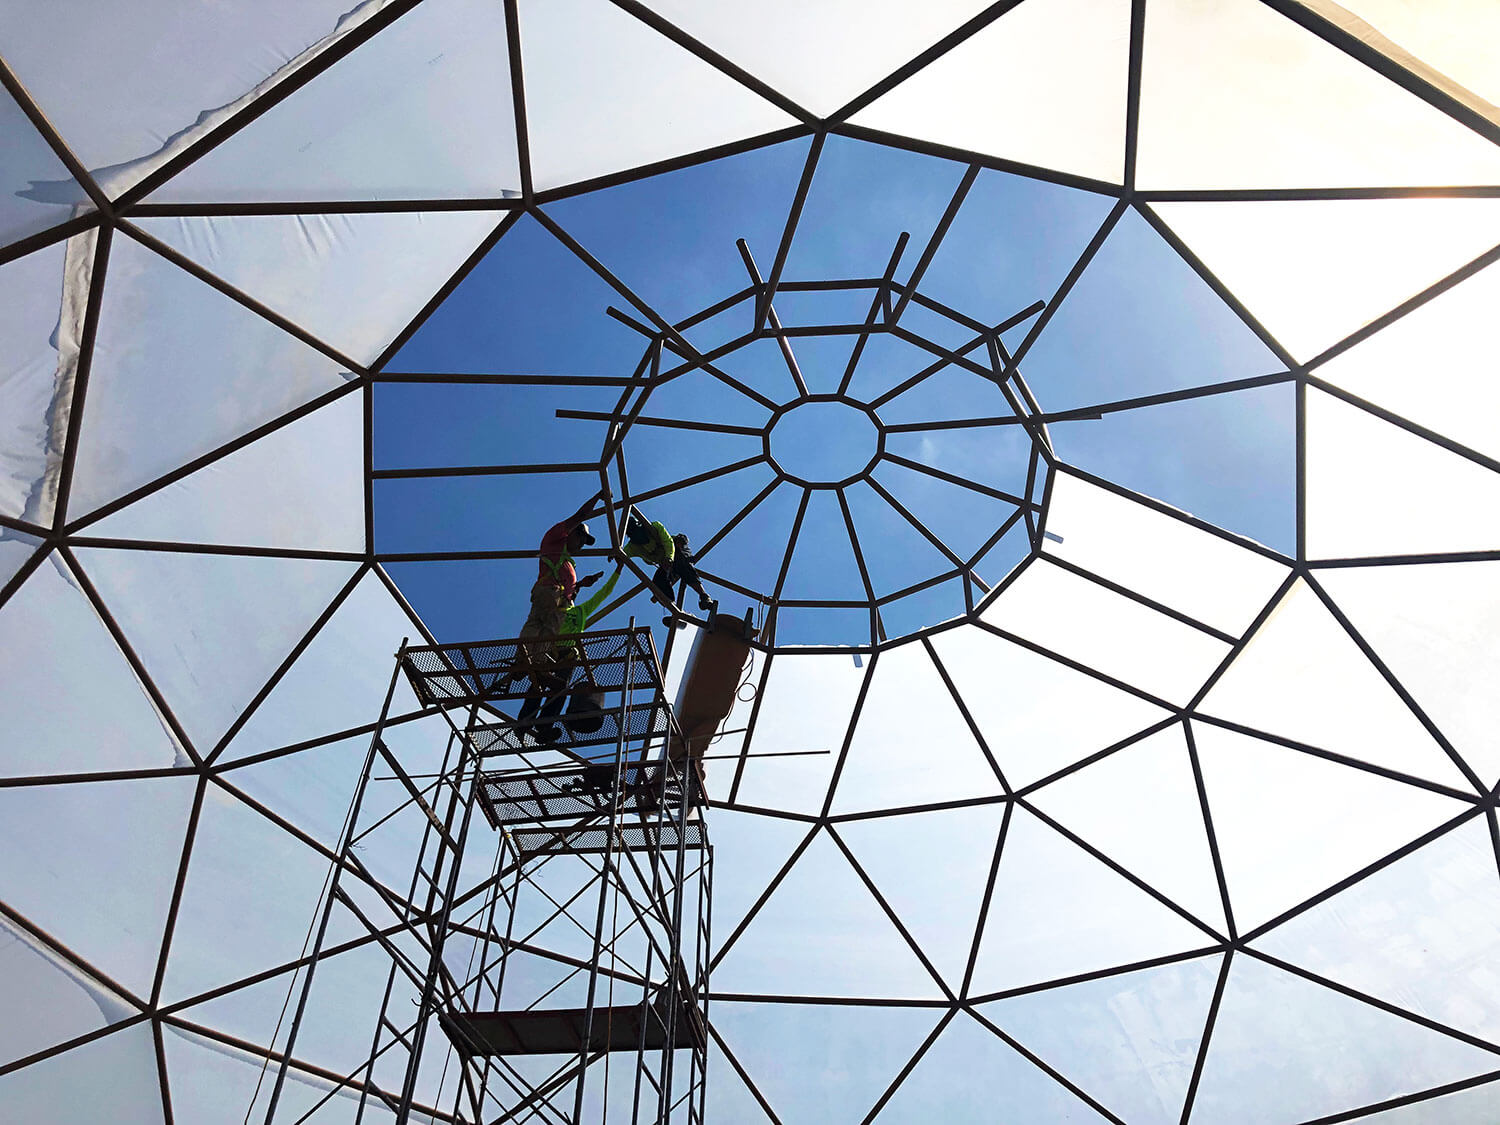 dome-looking-up-under-construction.jpg